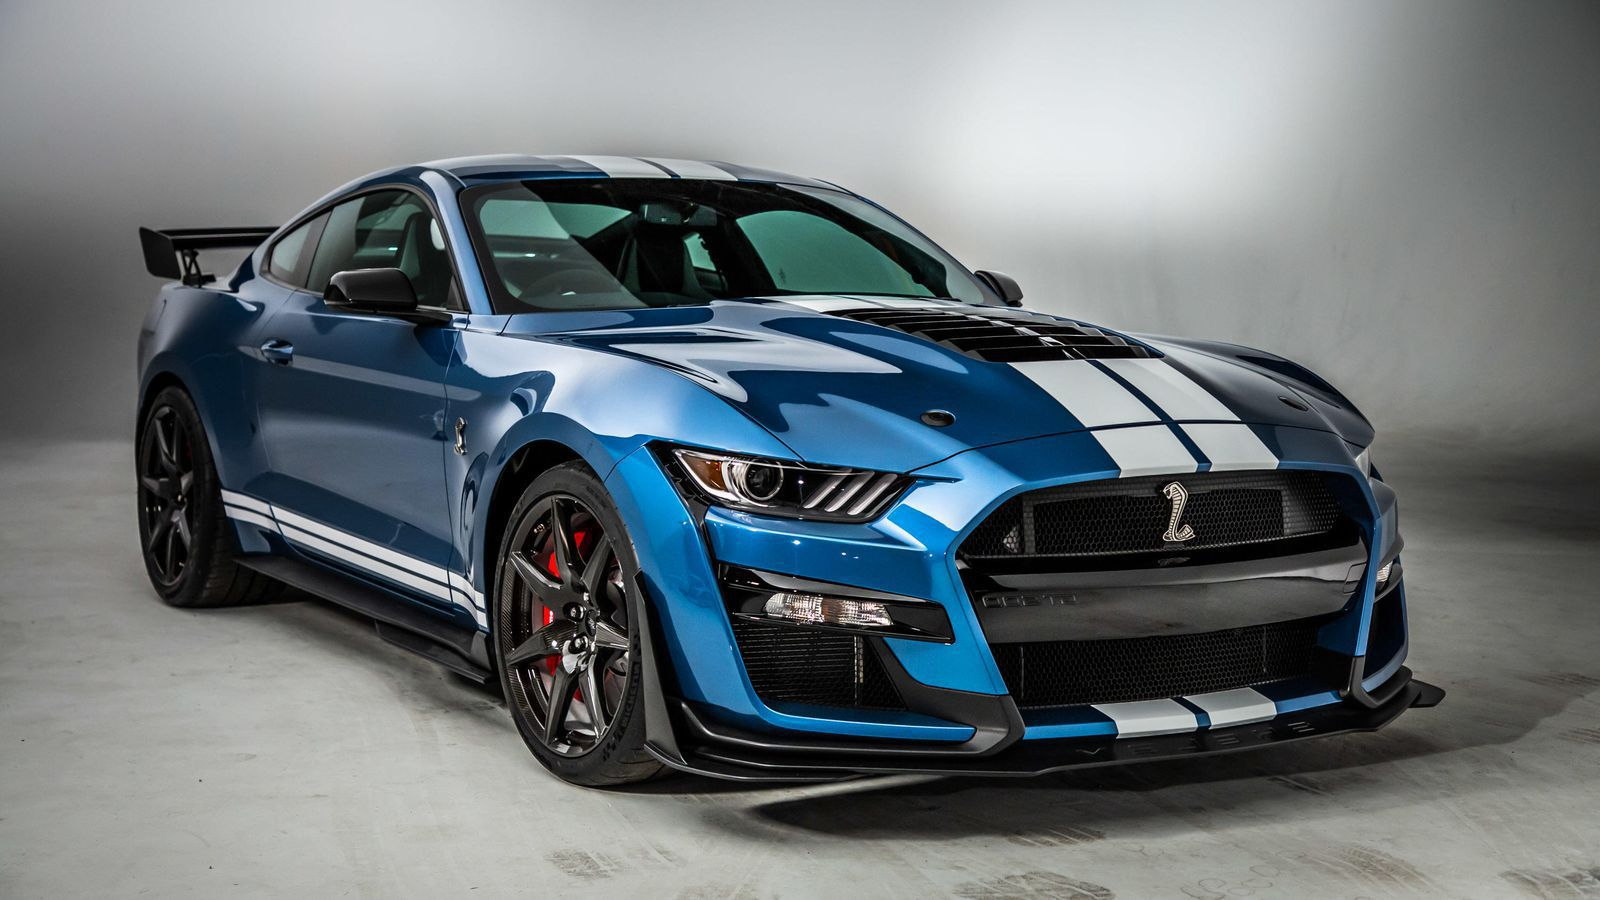 2020 cobra symbol Ford Mustang Shelby GT500